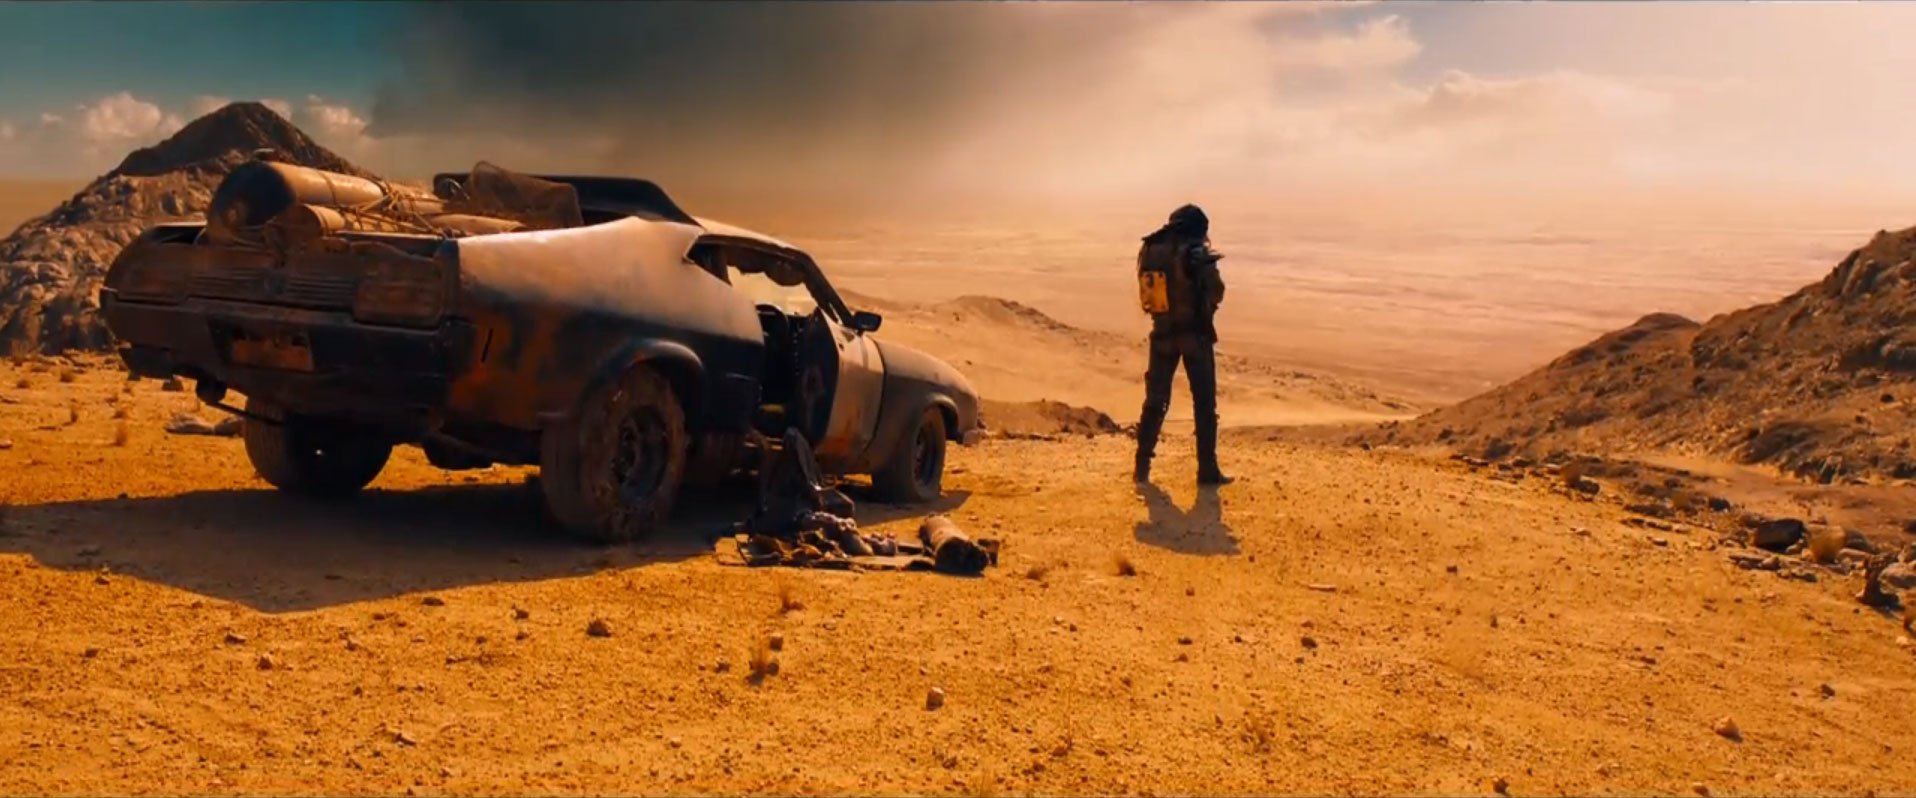 mad-max-fury-road-tom-hardy-trailer-still1